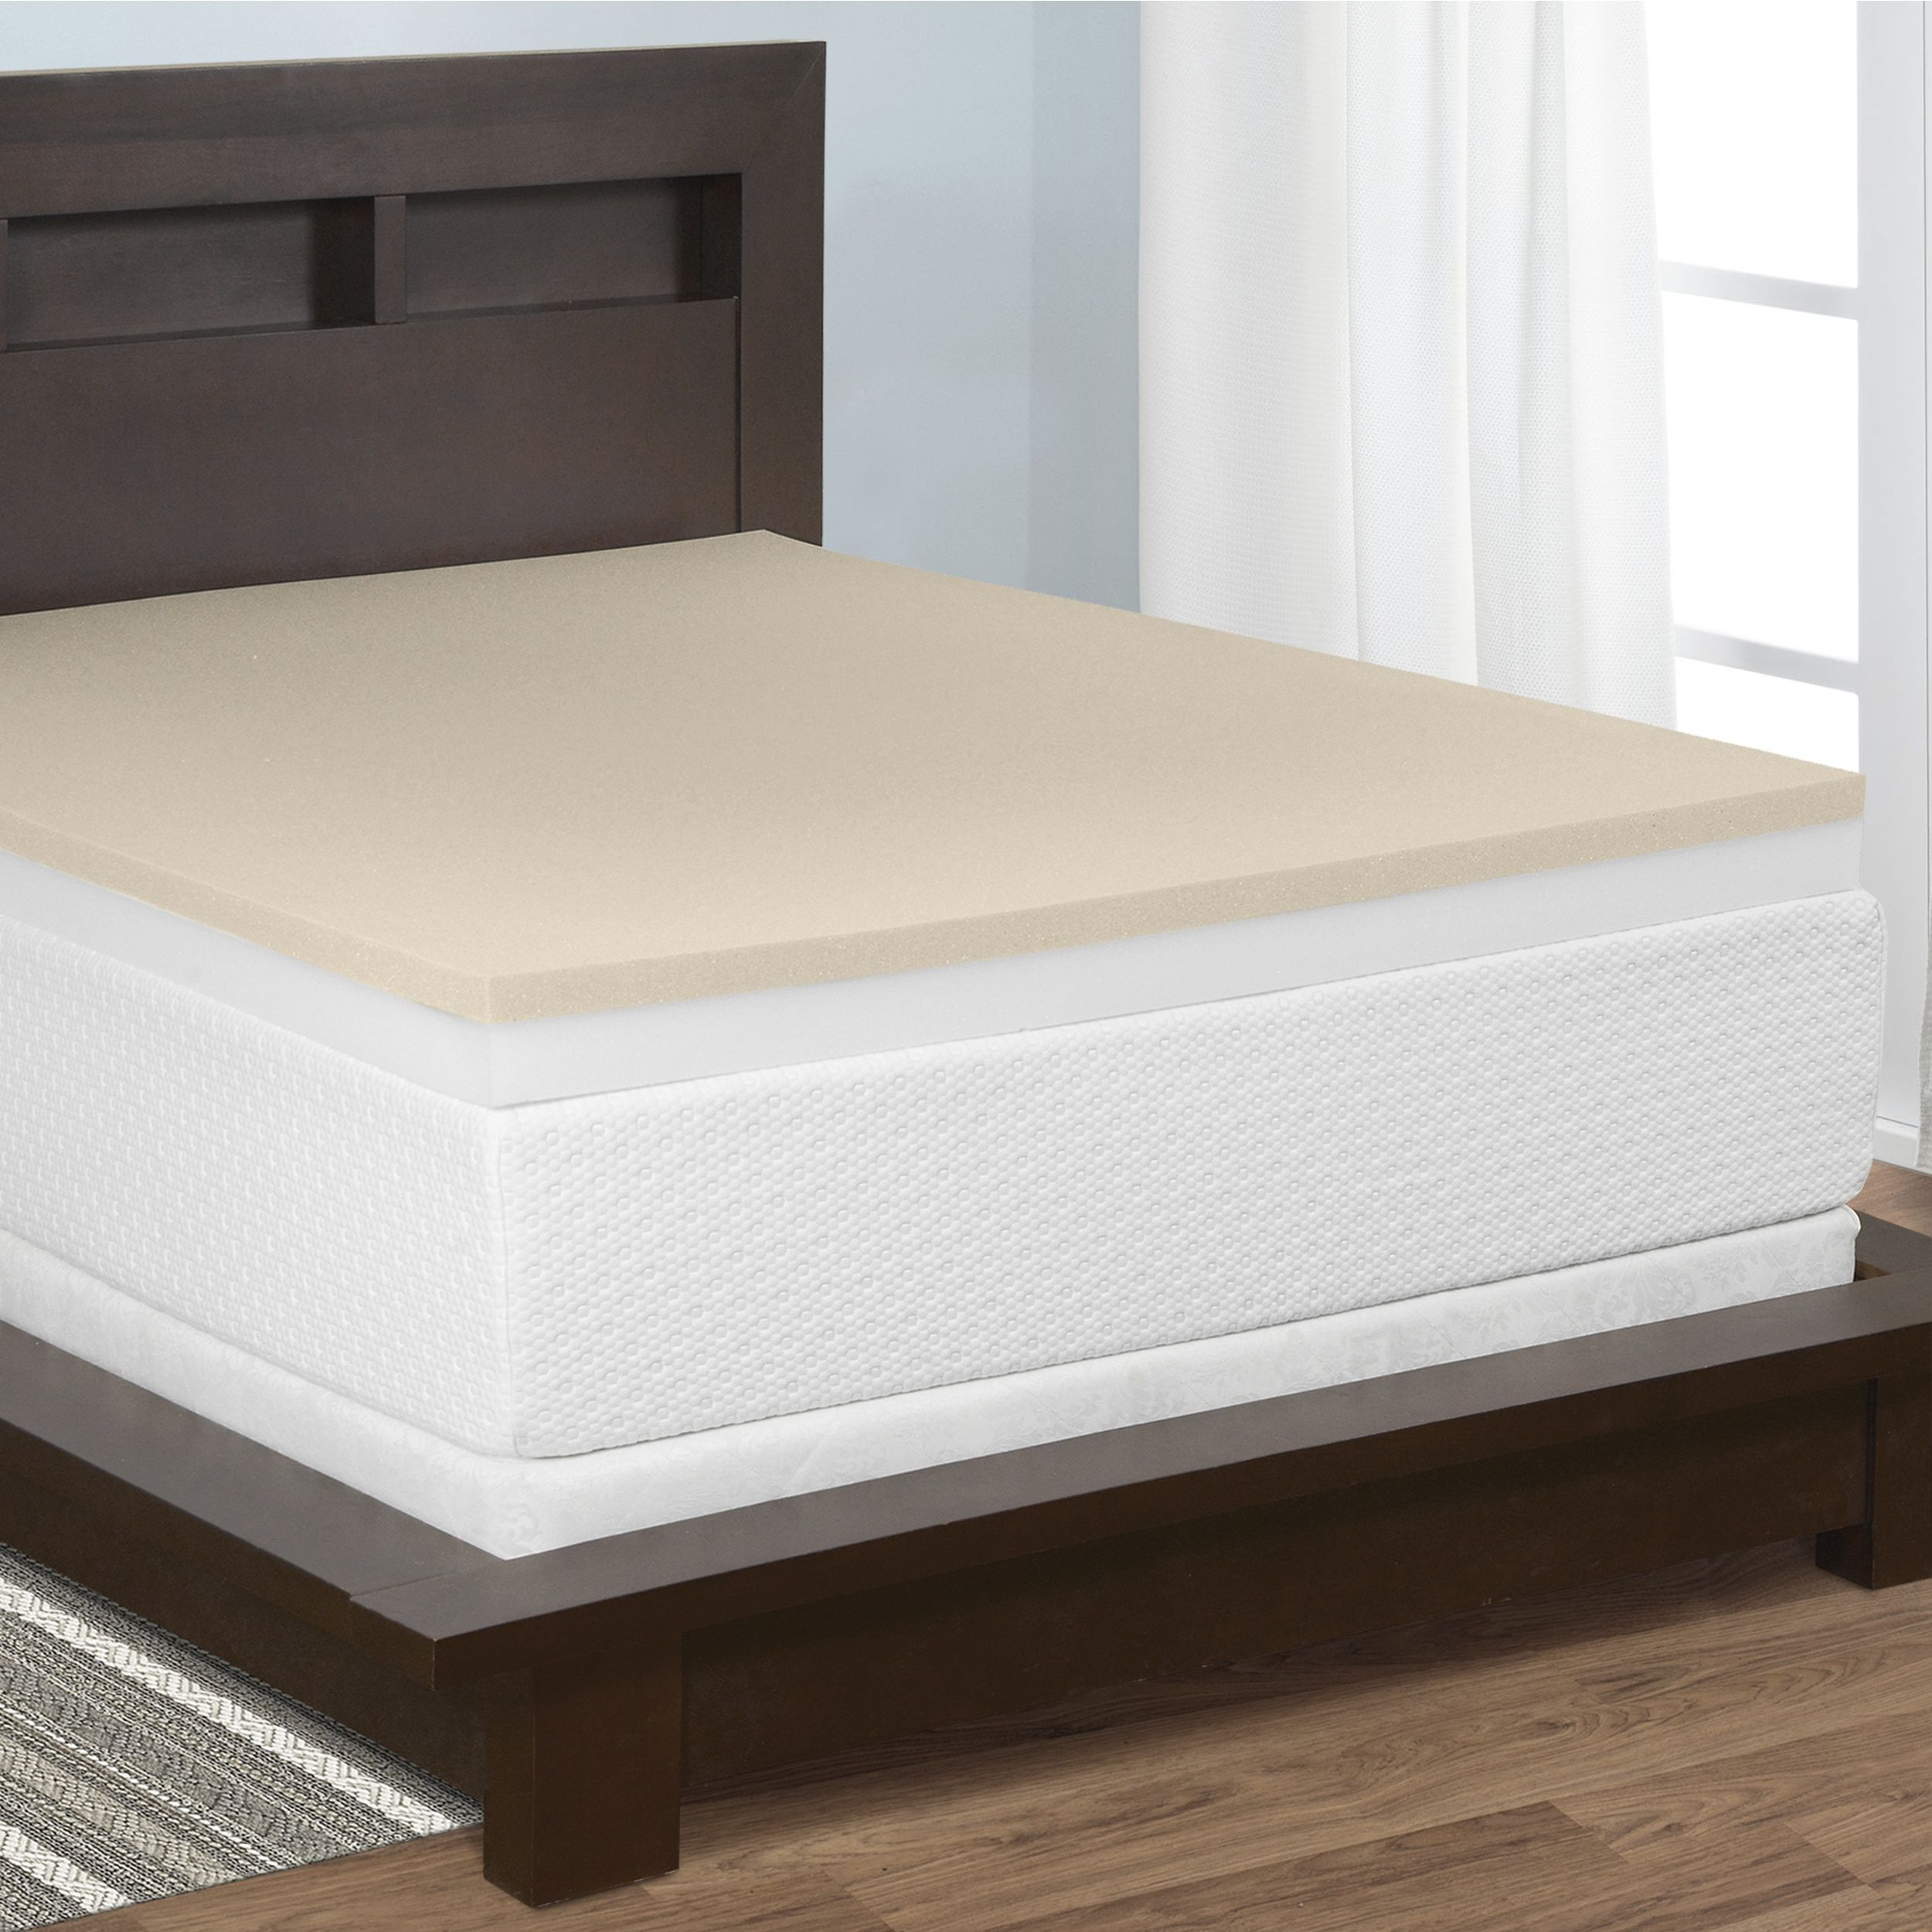 luxury restore foam select mattress pin a and topper memory inch